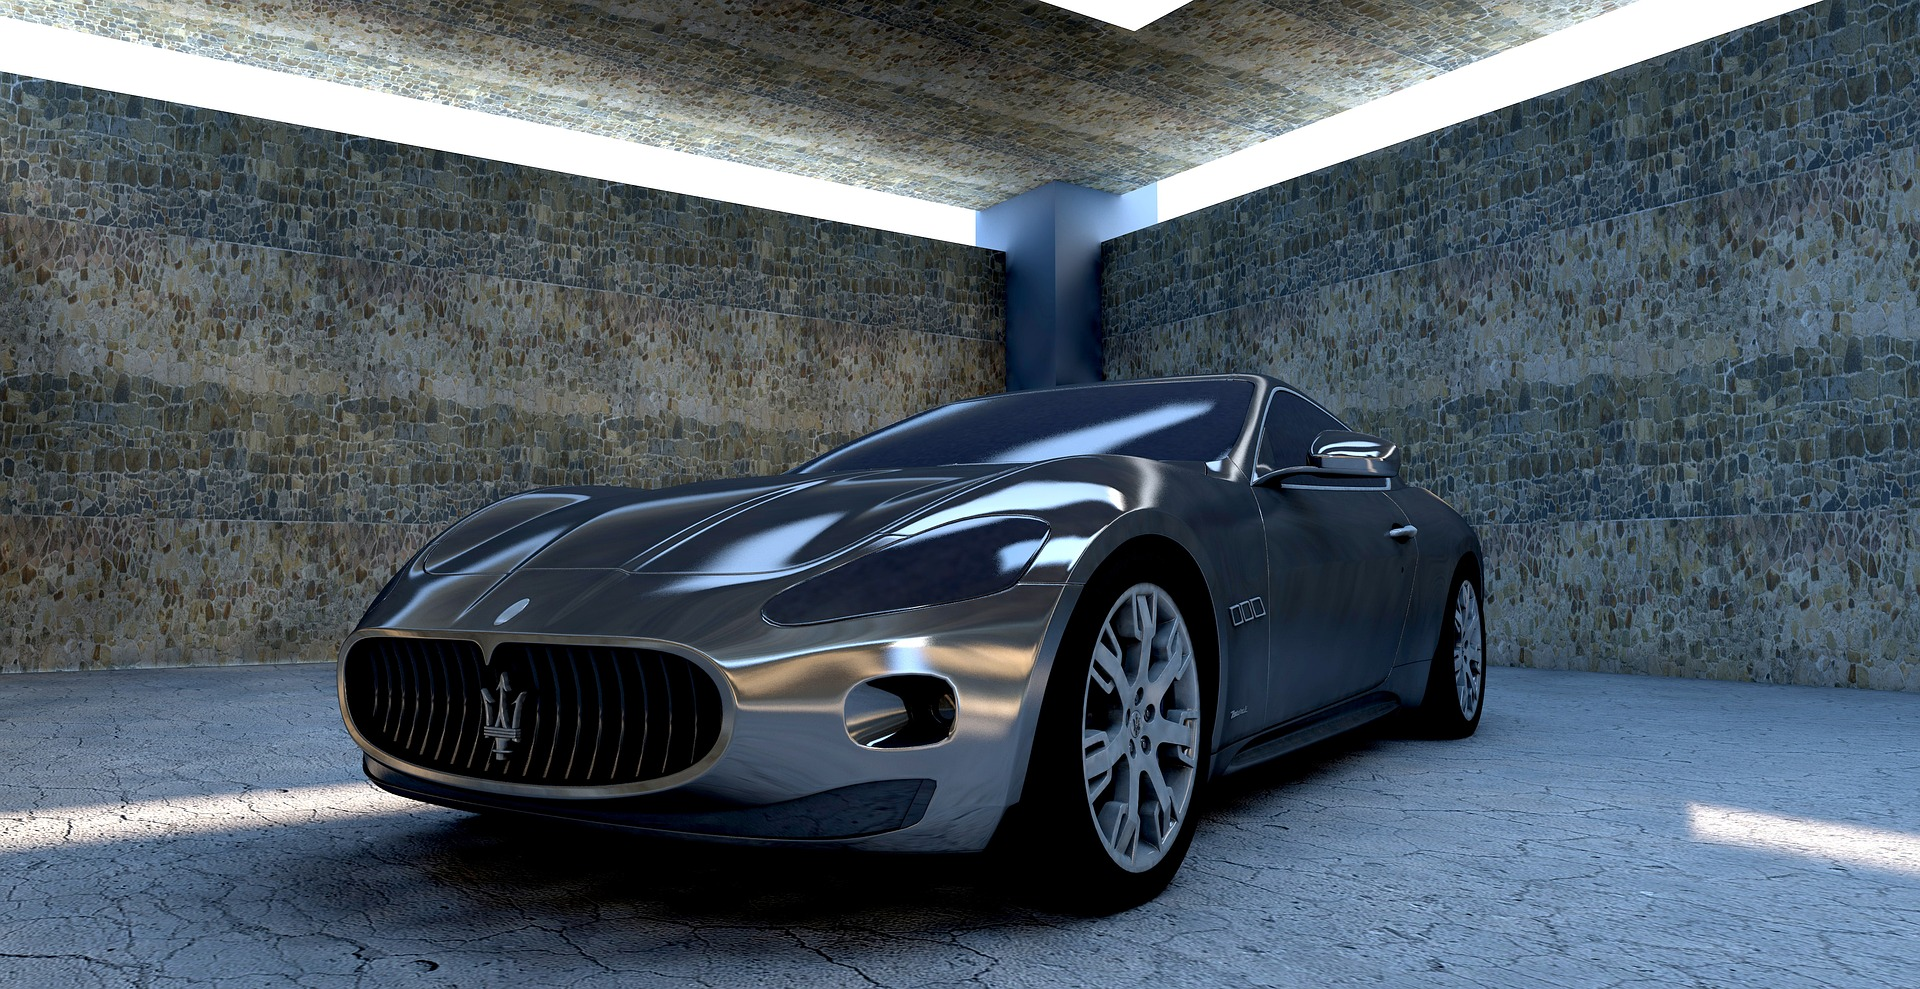 Luxury Car Rental Atlanta Residents and Visitors Can Afford